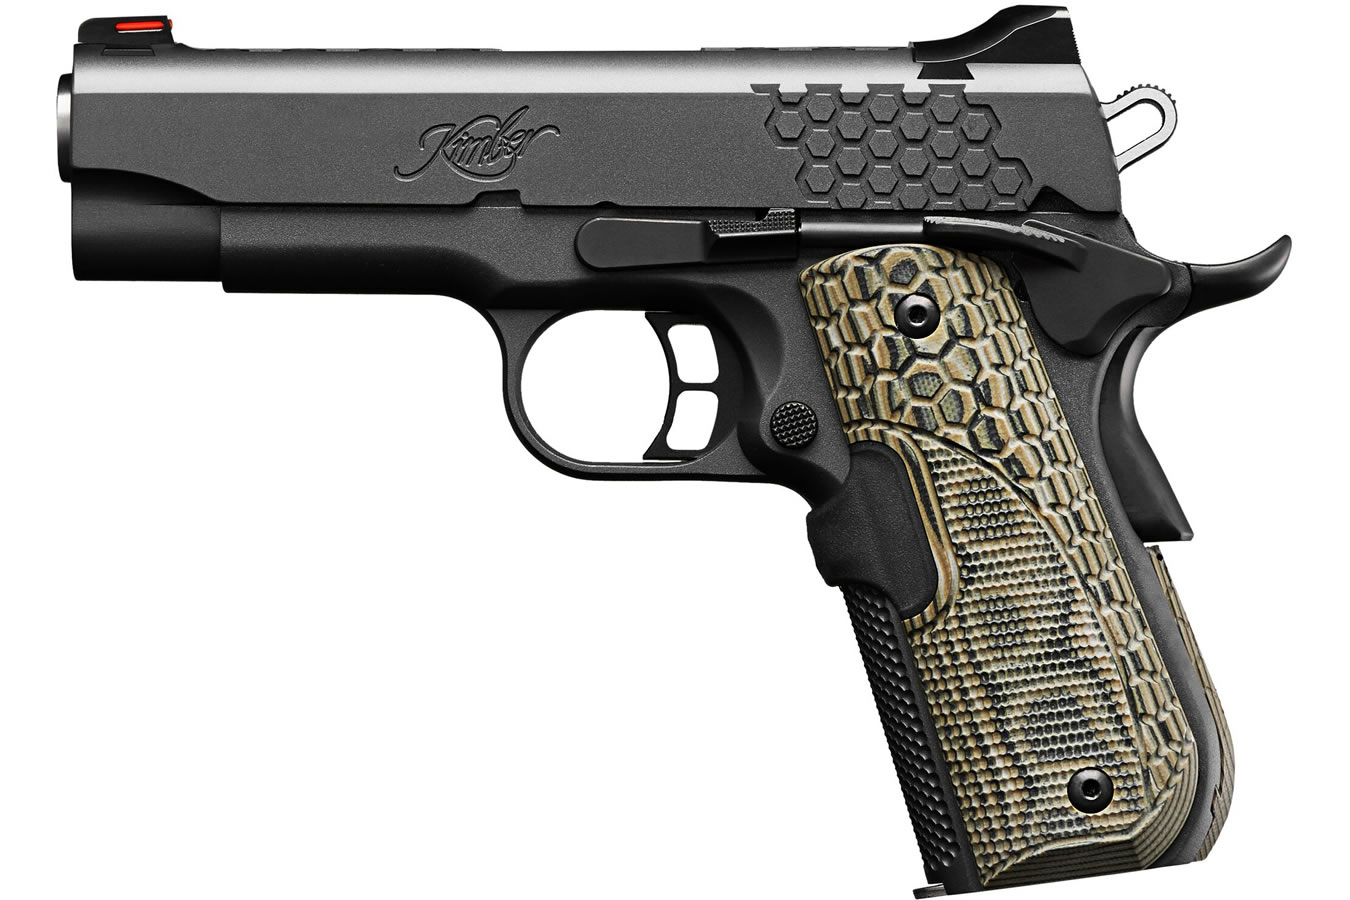 KHX Pro 9mm with Laser Enhanced Grips